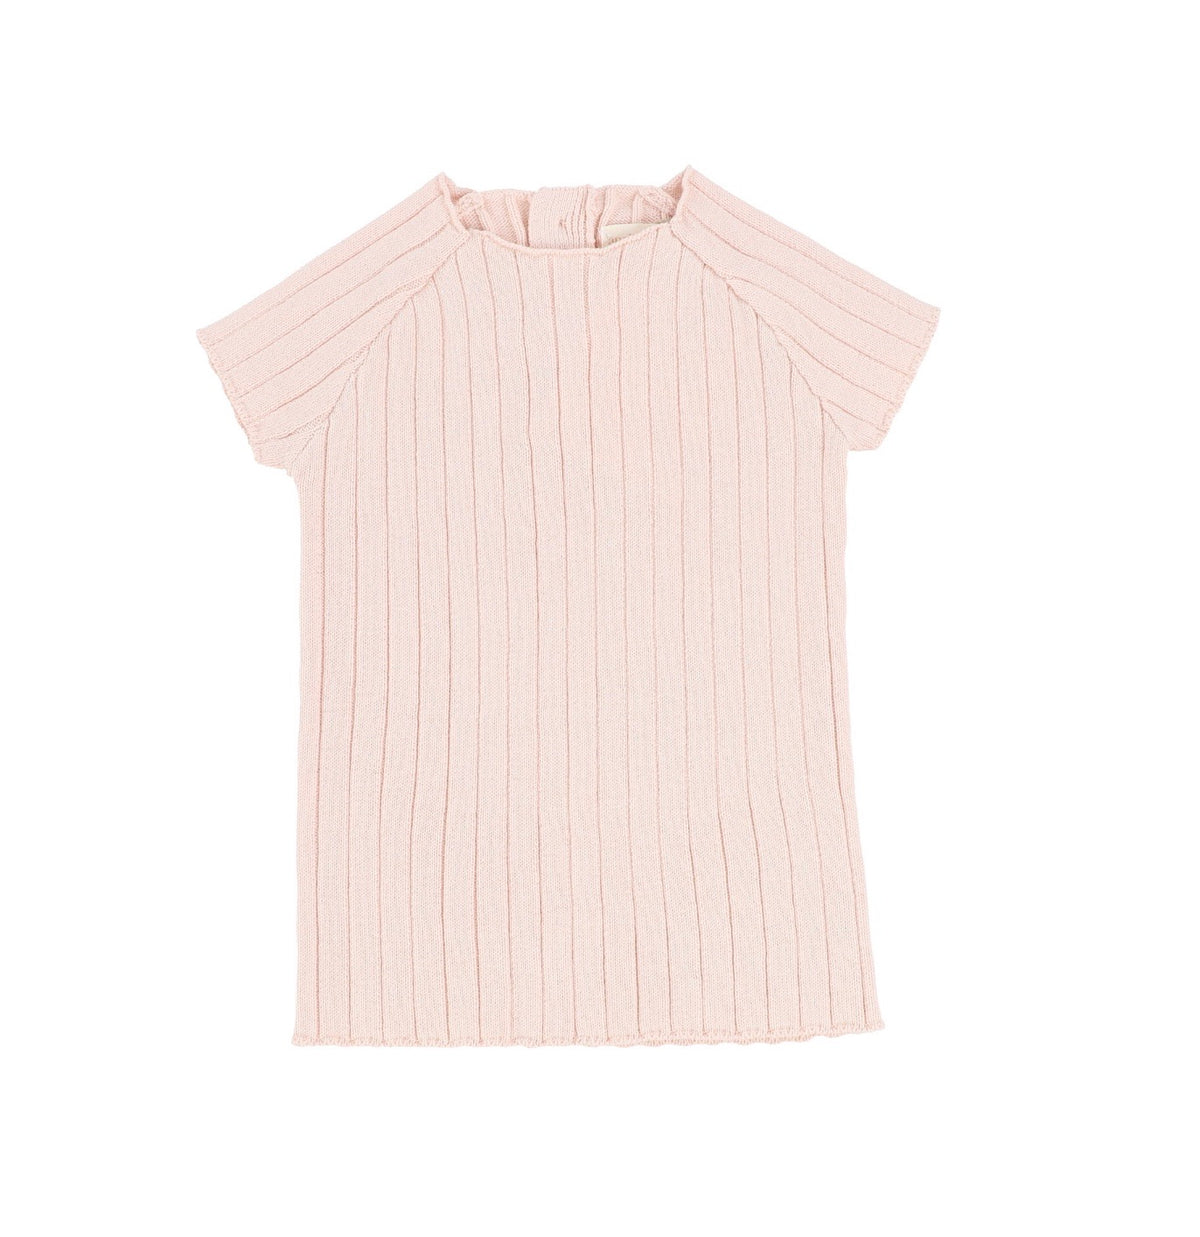 Pink Short Sleeve Knit Sweater